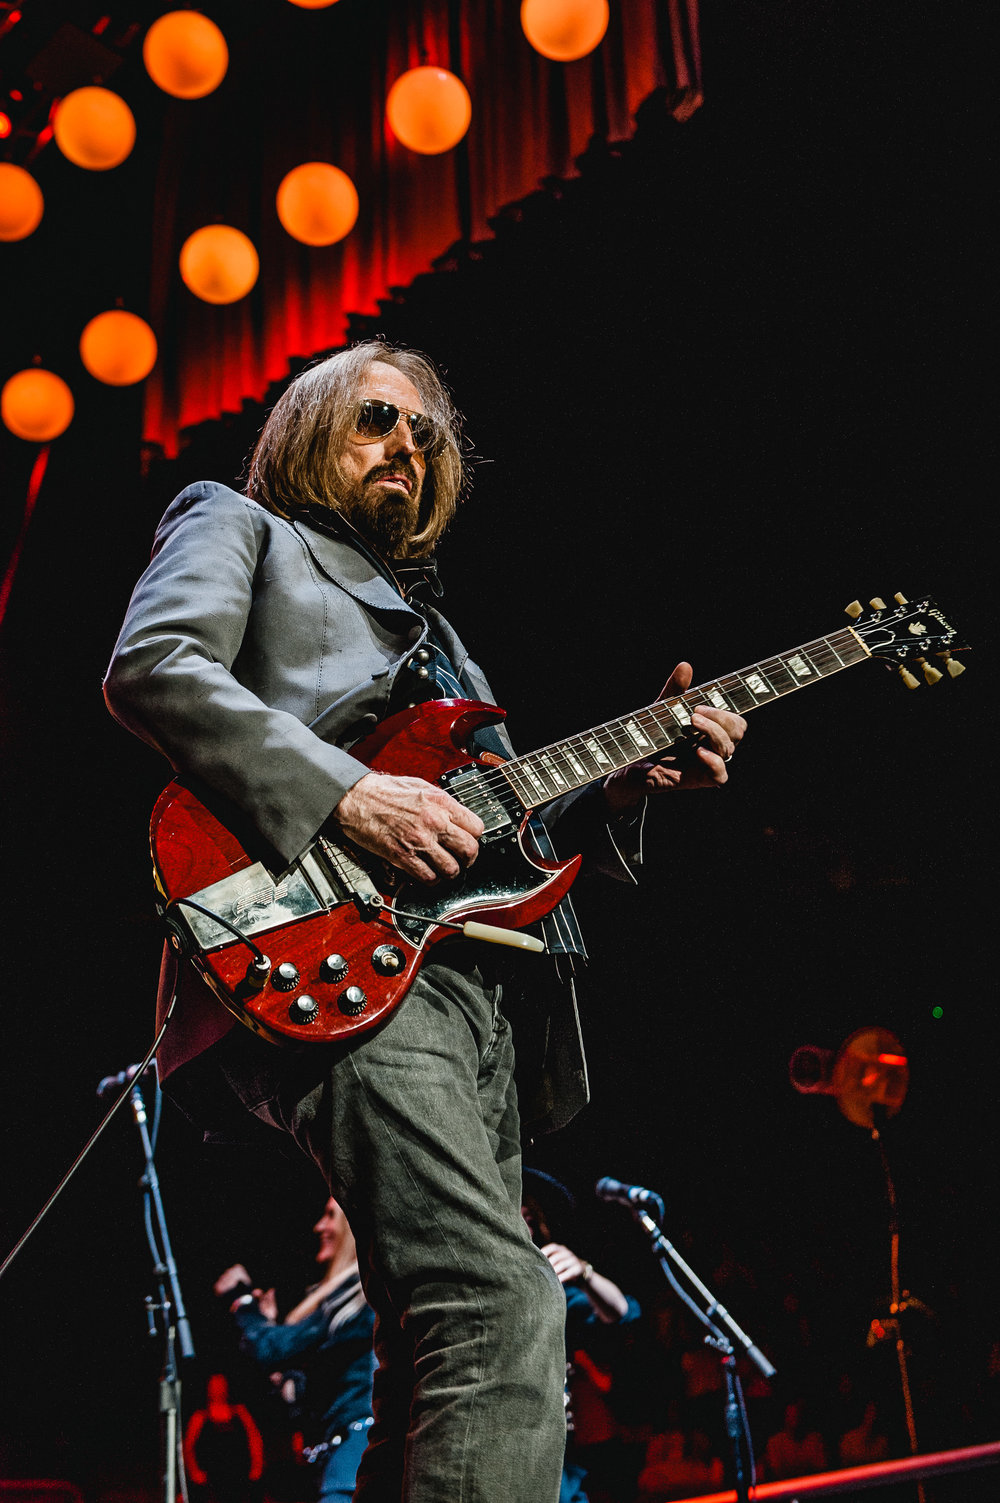 1_Tom_Petty-Rogers_Arena-Timothy_Nguyen-20710817 (13 of 27).jpg